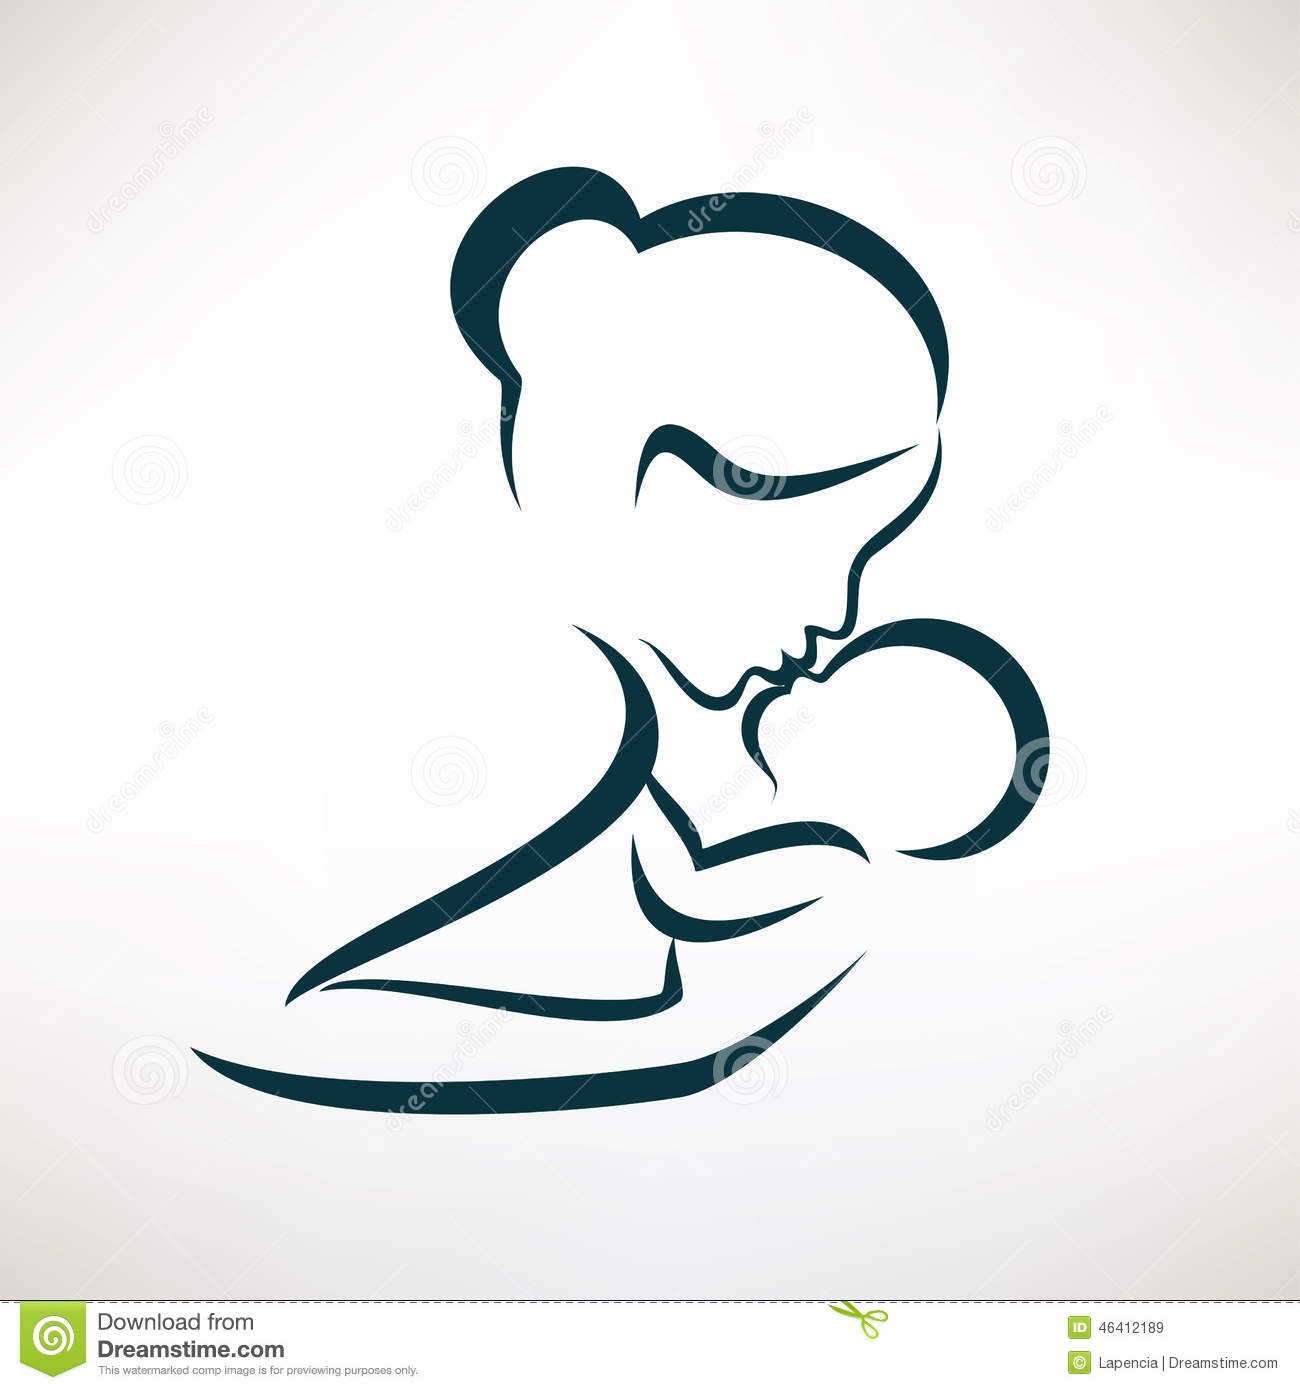 Mother And Baby Stylized Vector Symbol Stock Vector - Image: 46412189 Eagle Football Logo